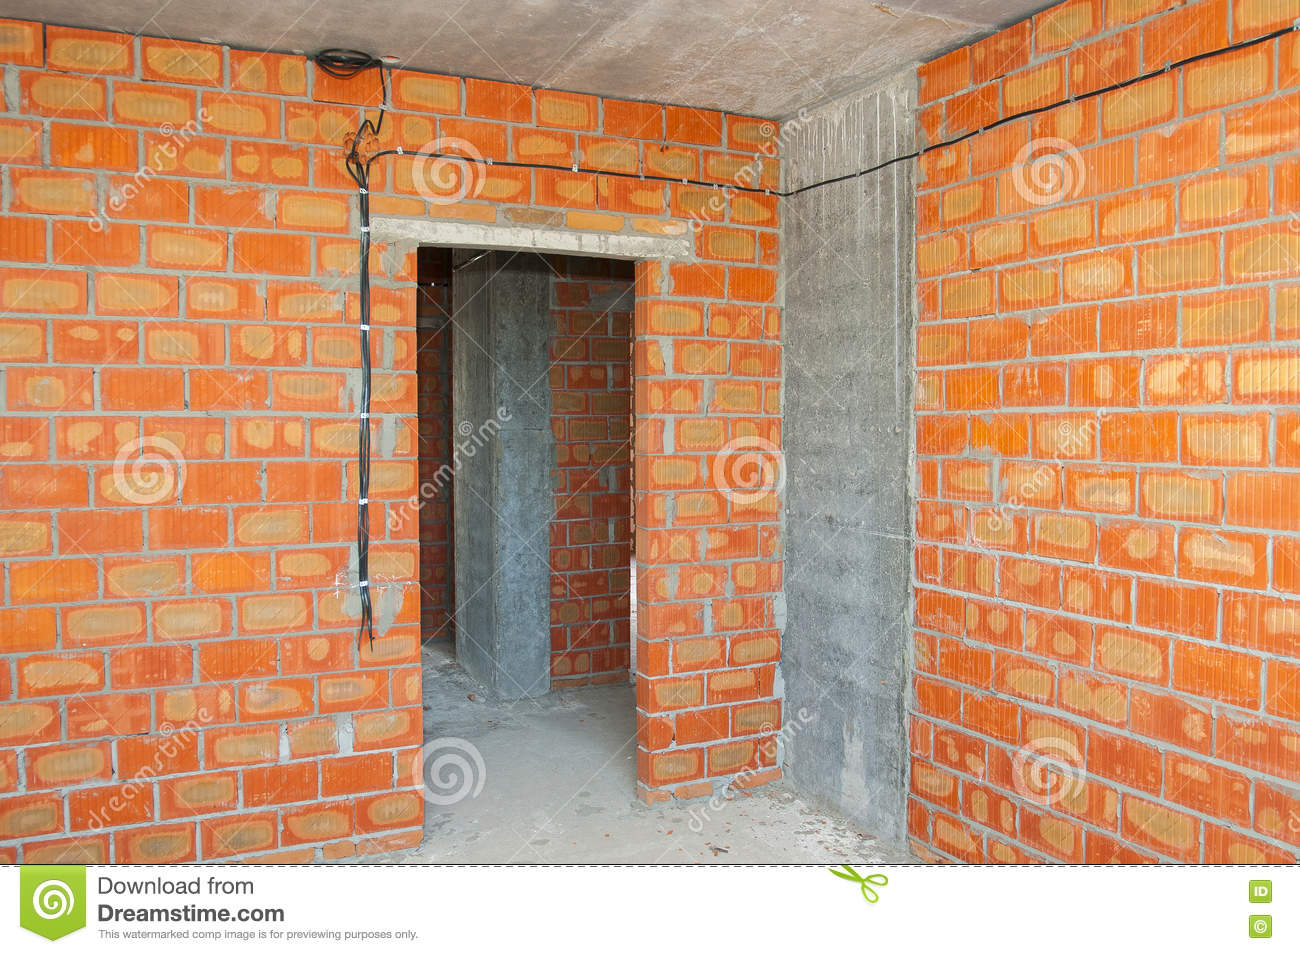 Bricklayer building new house with brick walls, interior rooms,wiring